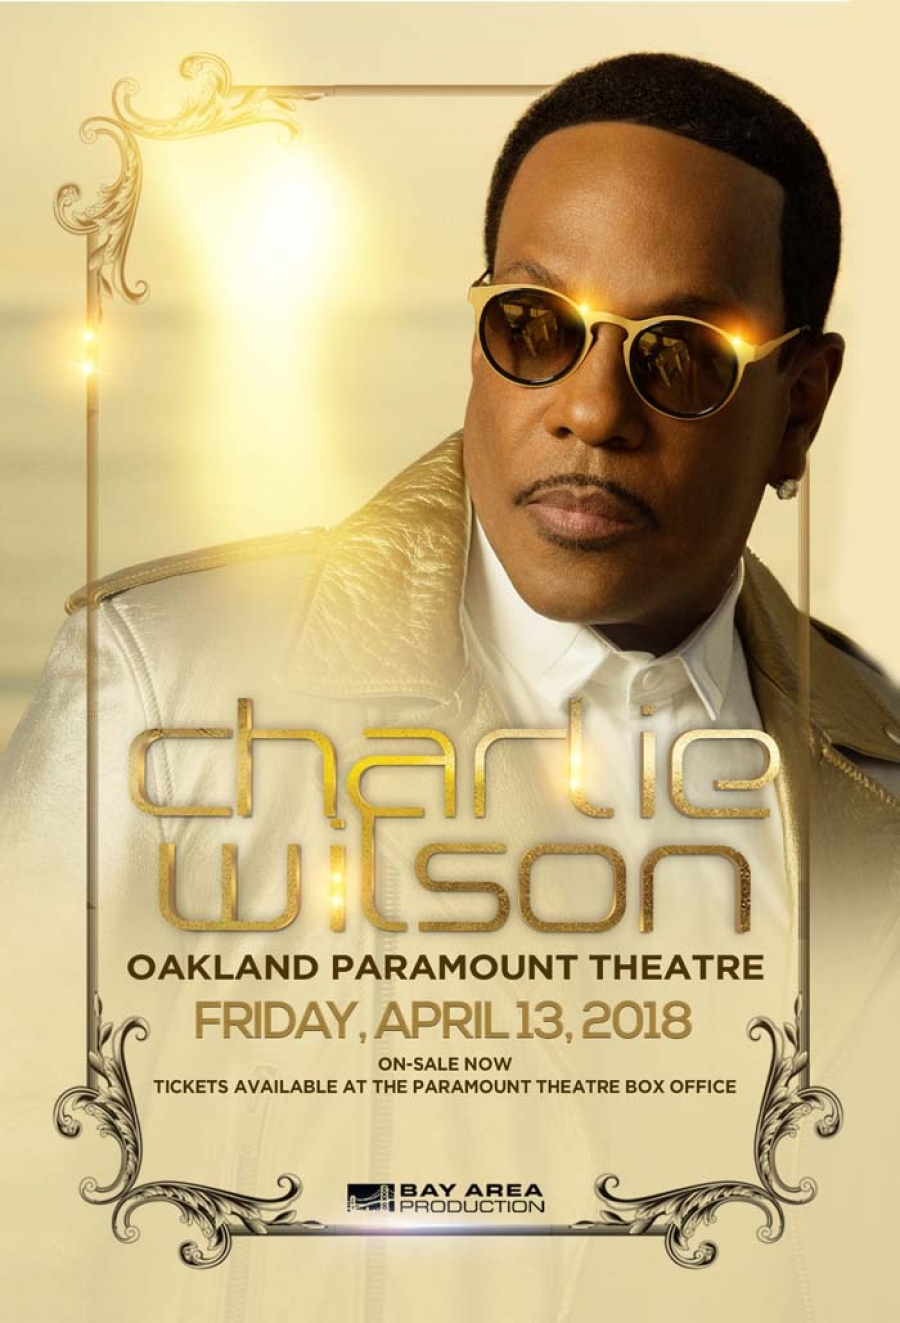 Charlie Wilson performing LIVE at Oakland Paramount Theatre